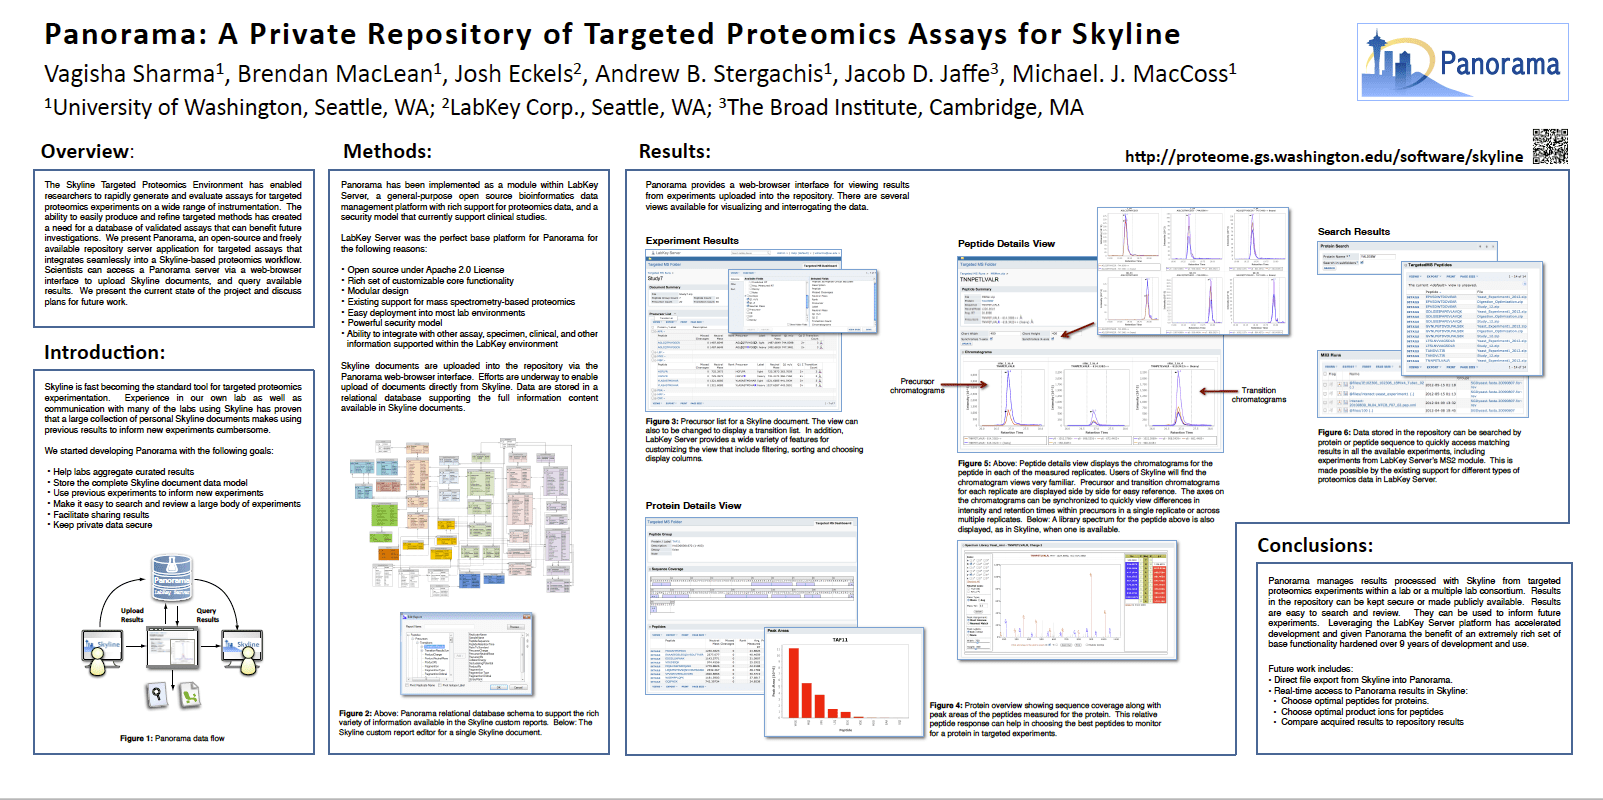 Panorama: A Private Repository of Targeted Proteomics Assays for Skyline